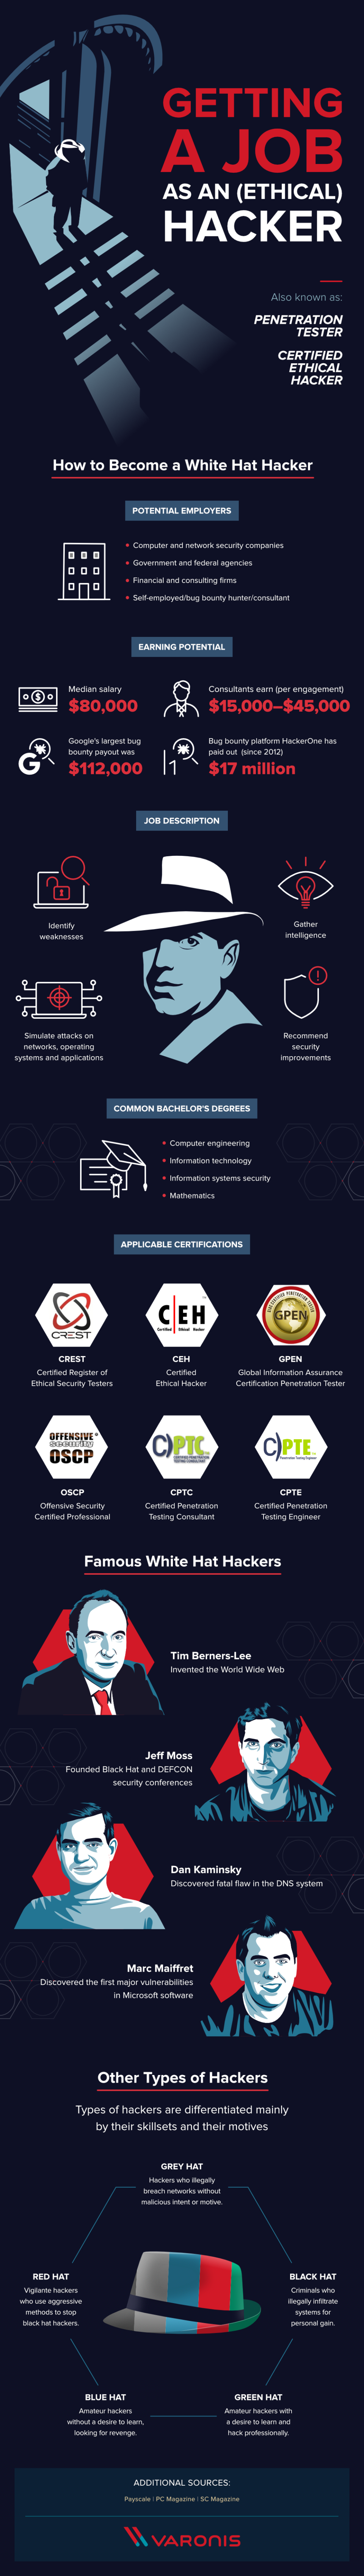 What does an ethical hacker take to be? #infographic